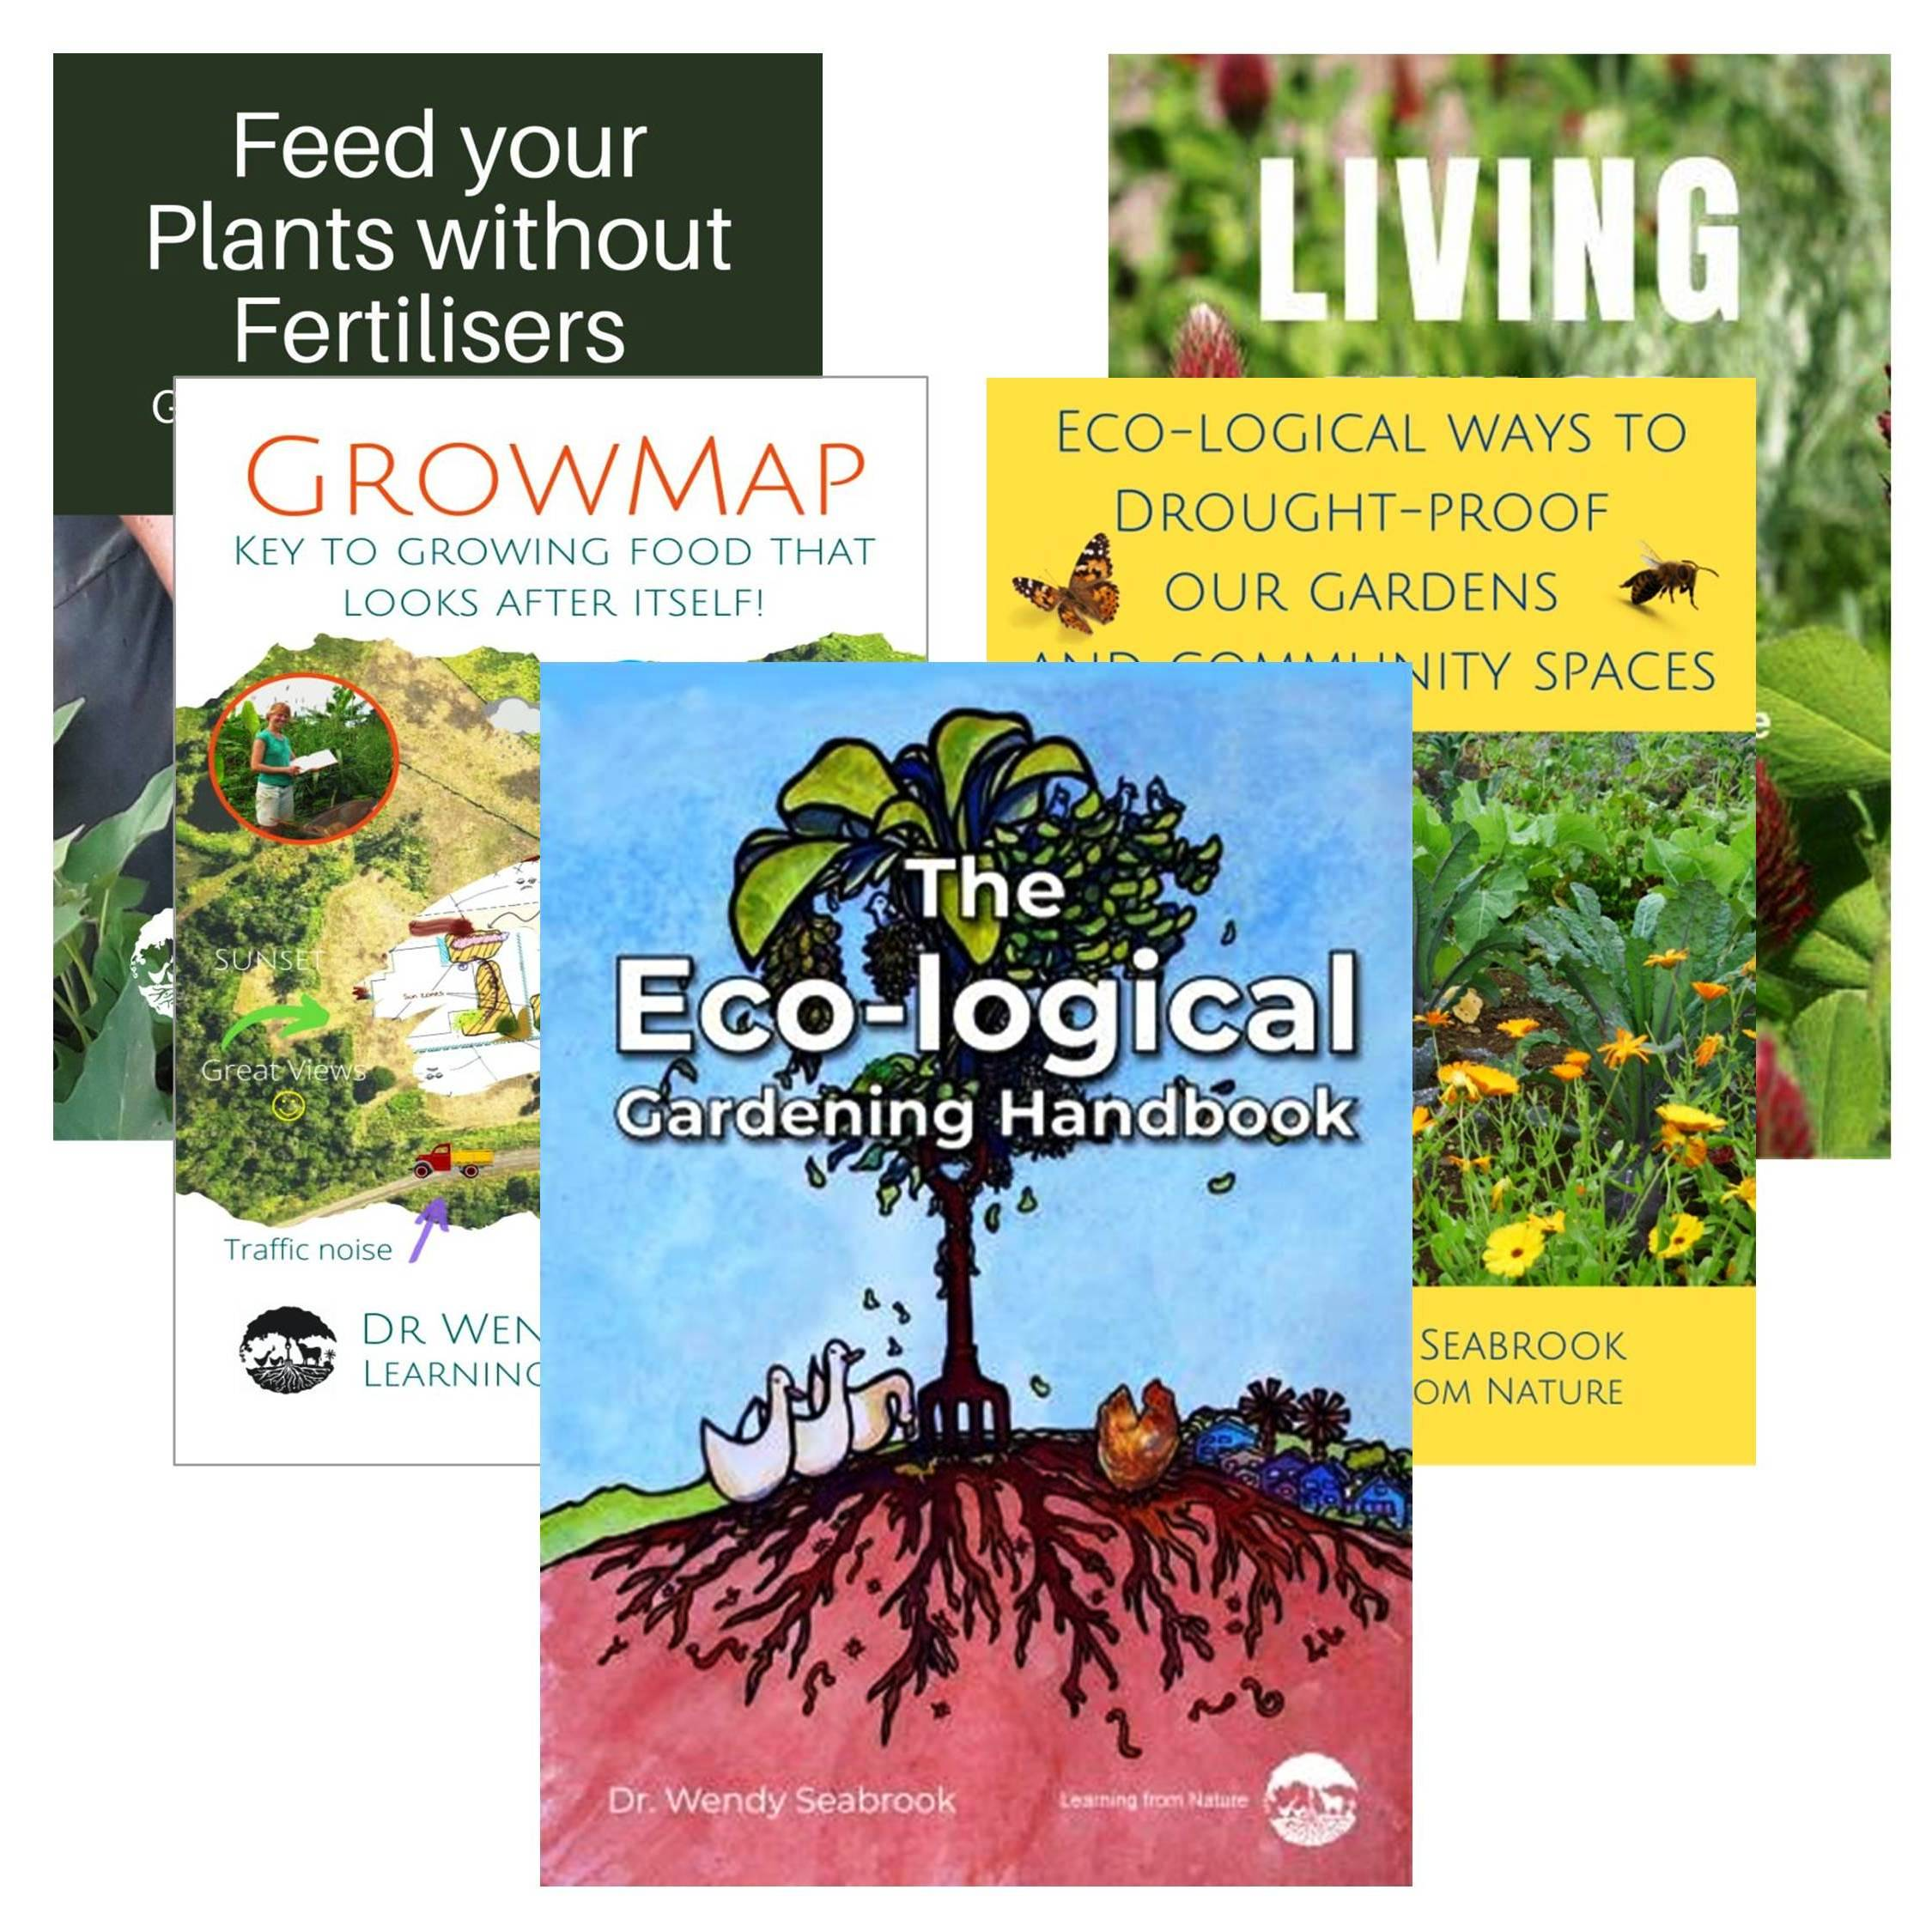 Image showing resources on ecological gardening